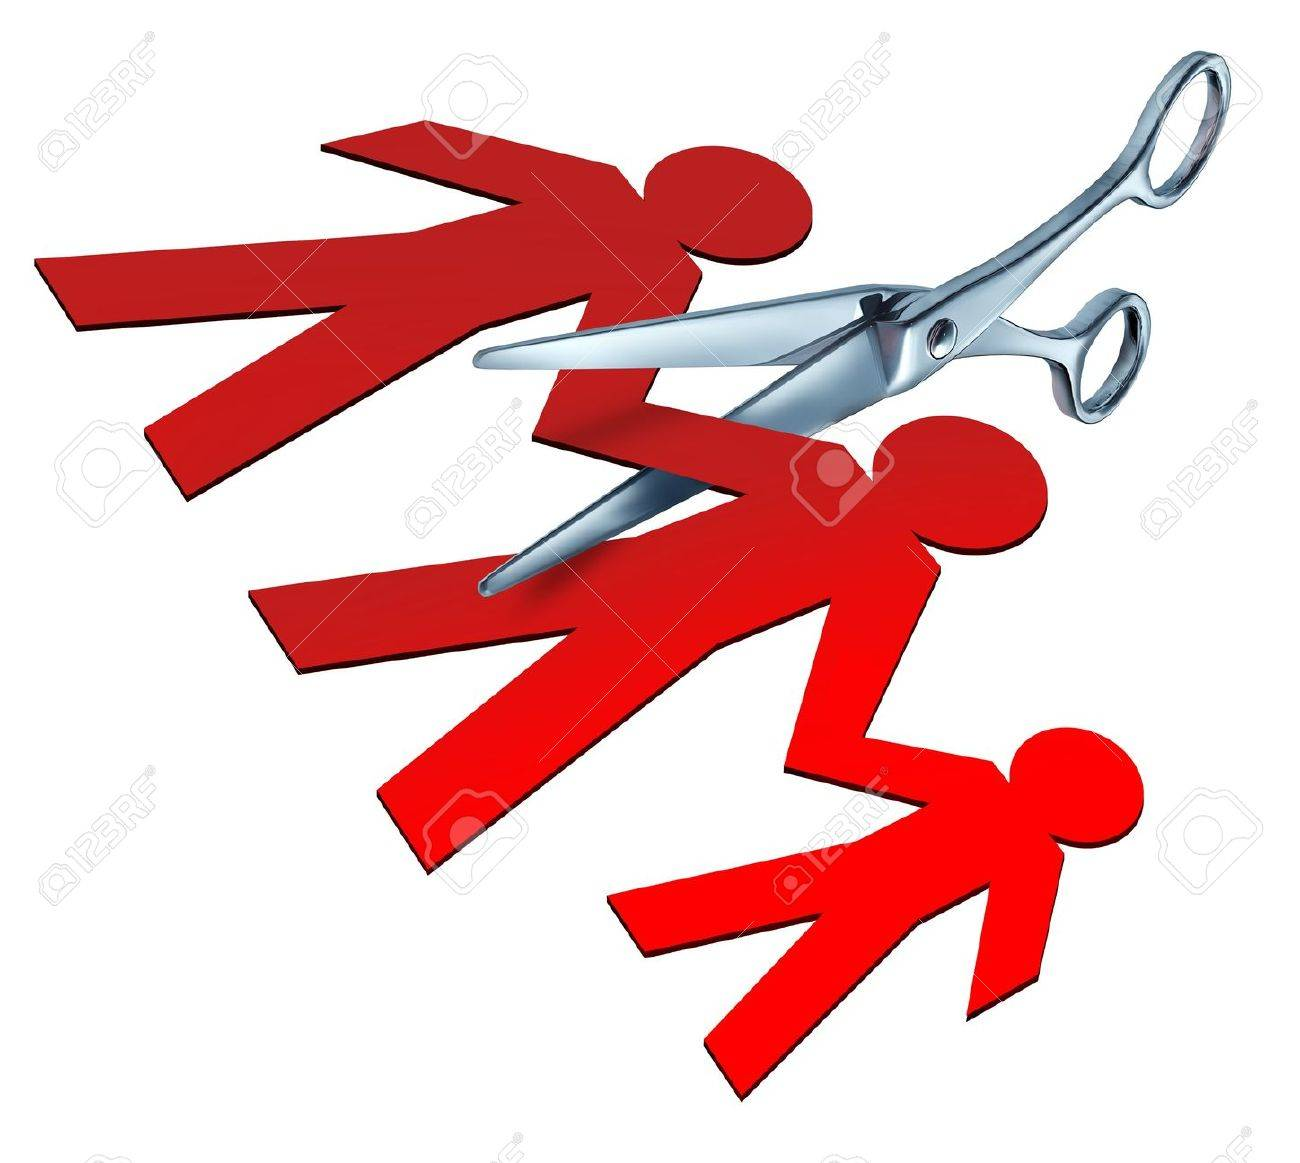 Broken family and child custody after a bitter divorce and separation represented by a pair of metal scissors cutting apart a family of red paper cut outs of a mother father and child showing the concept of division and alienation. Stock Photo - 10892151